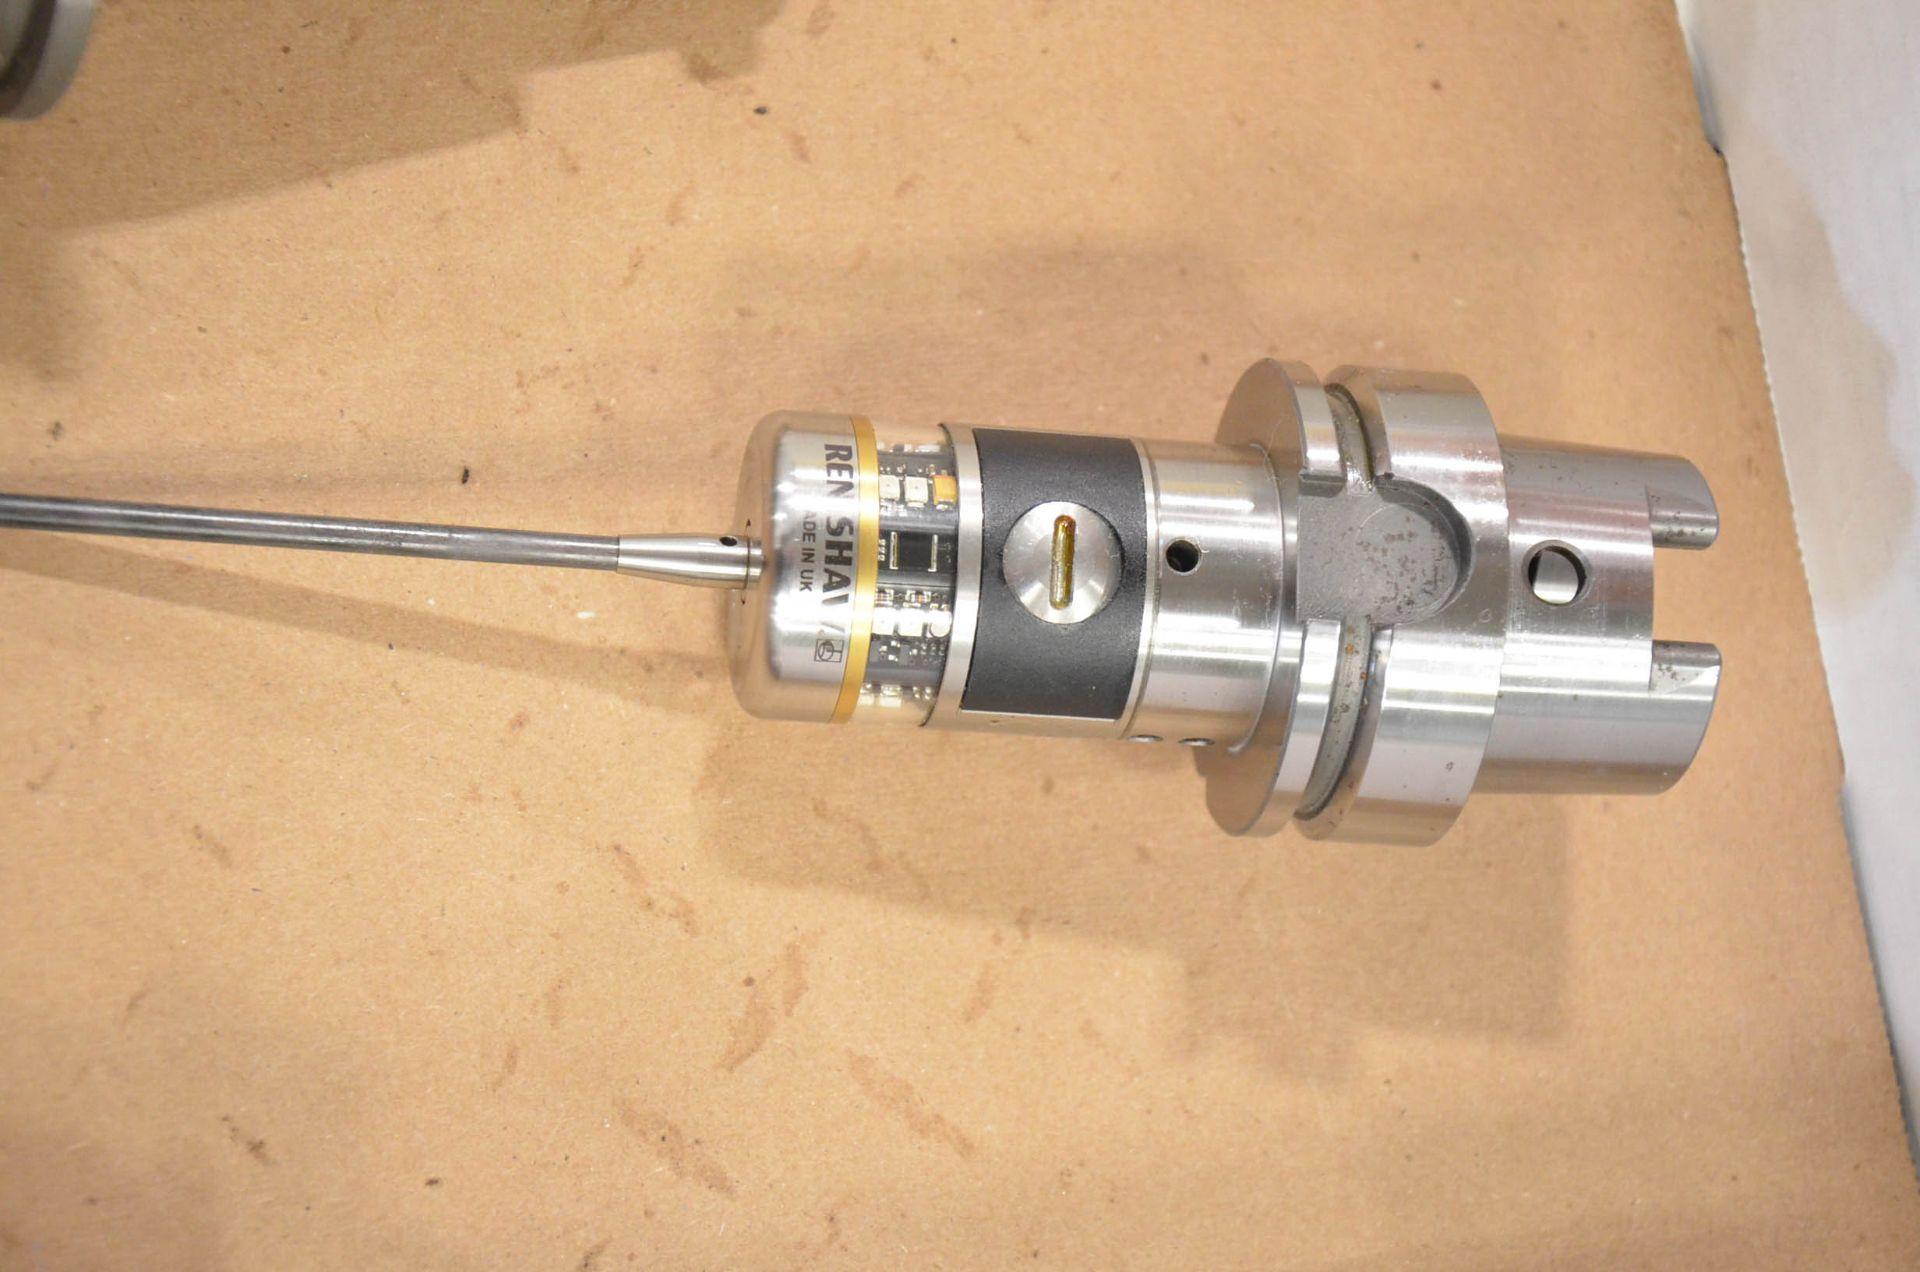 LOT/ RENISHAW OMP400 HSK-A63 TOUCH PROBE, S/N 0KMR62; HSK-A63 CALIBRATION BALL - Image 2 of 4